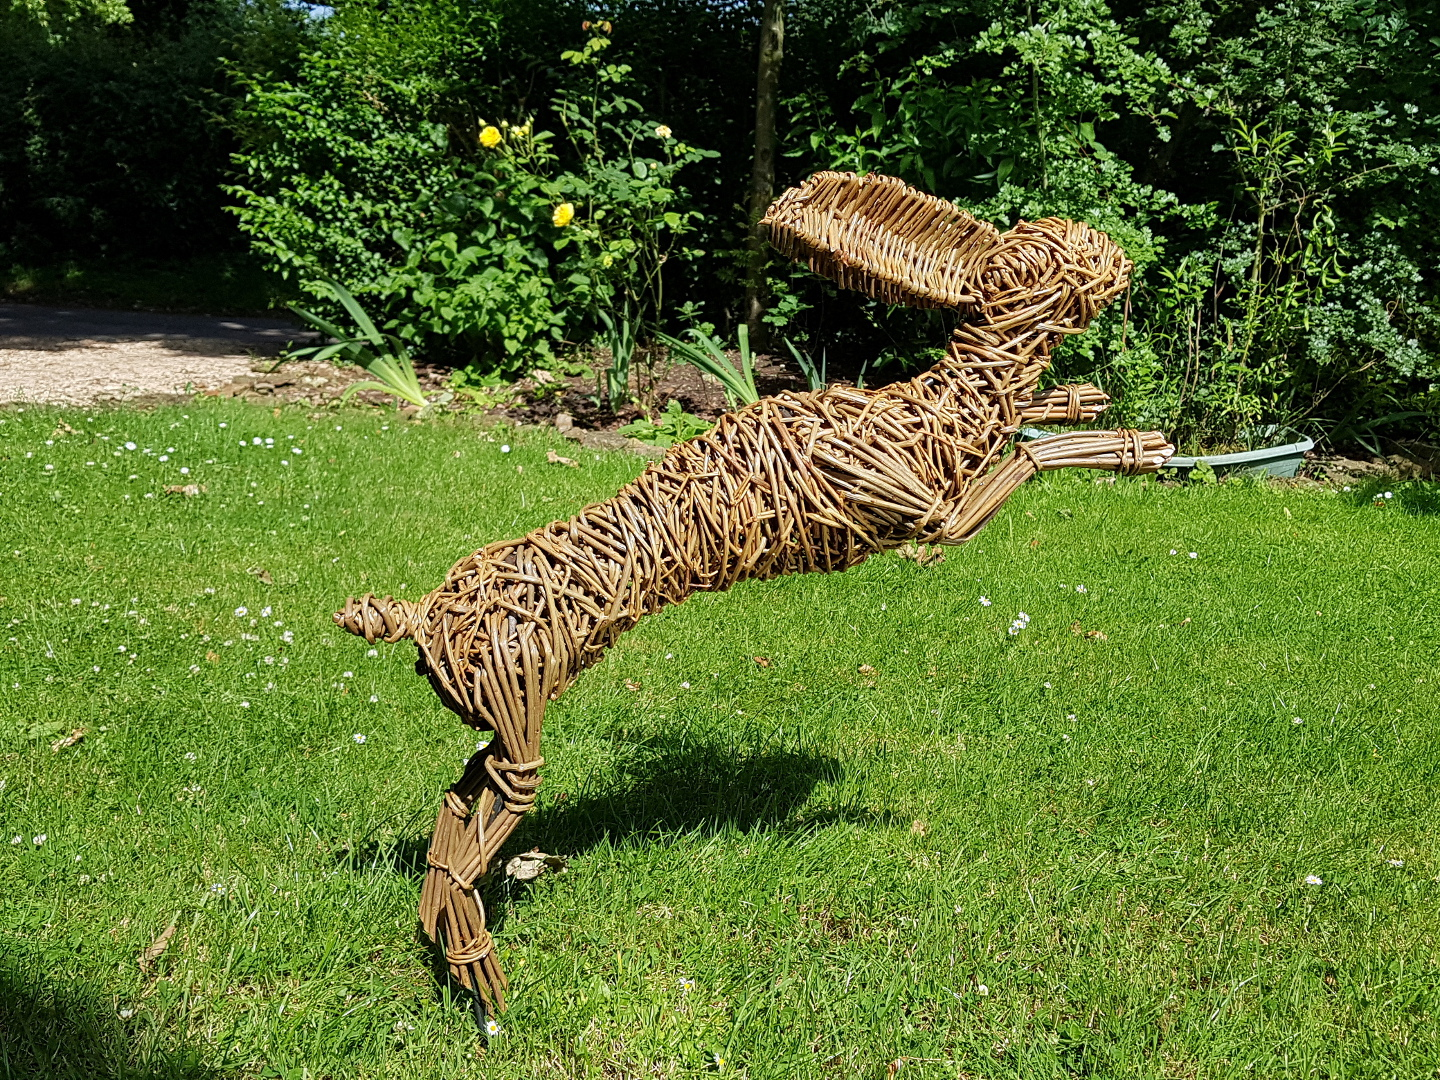 Willow Leaping hare